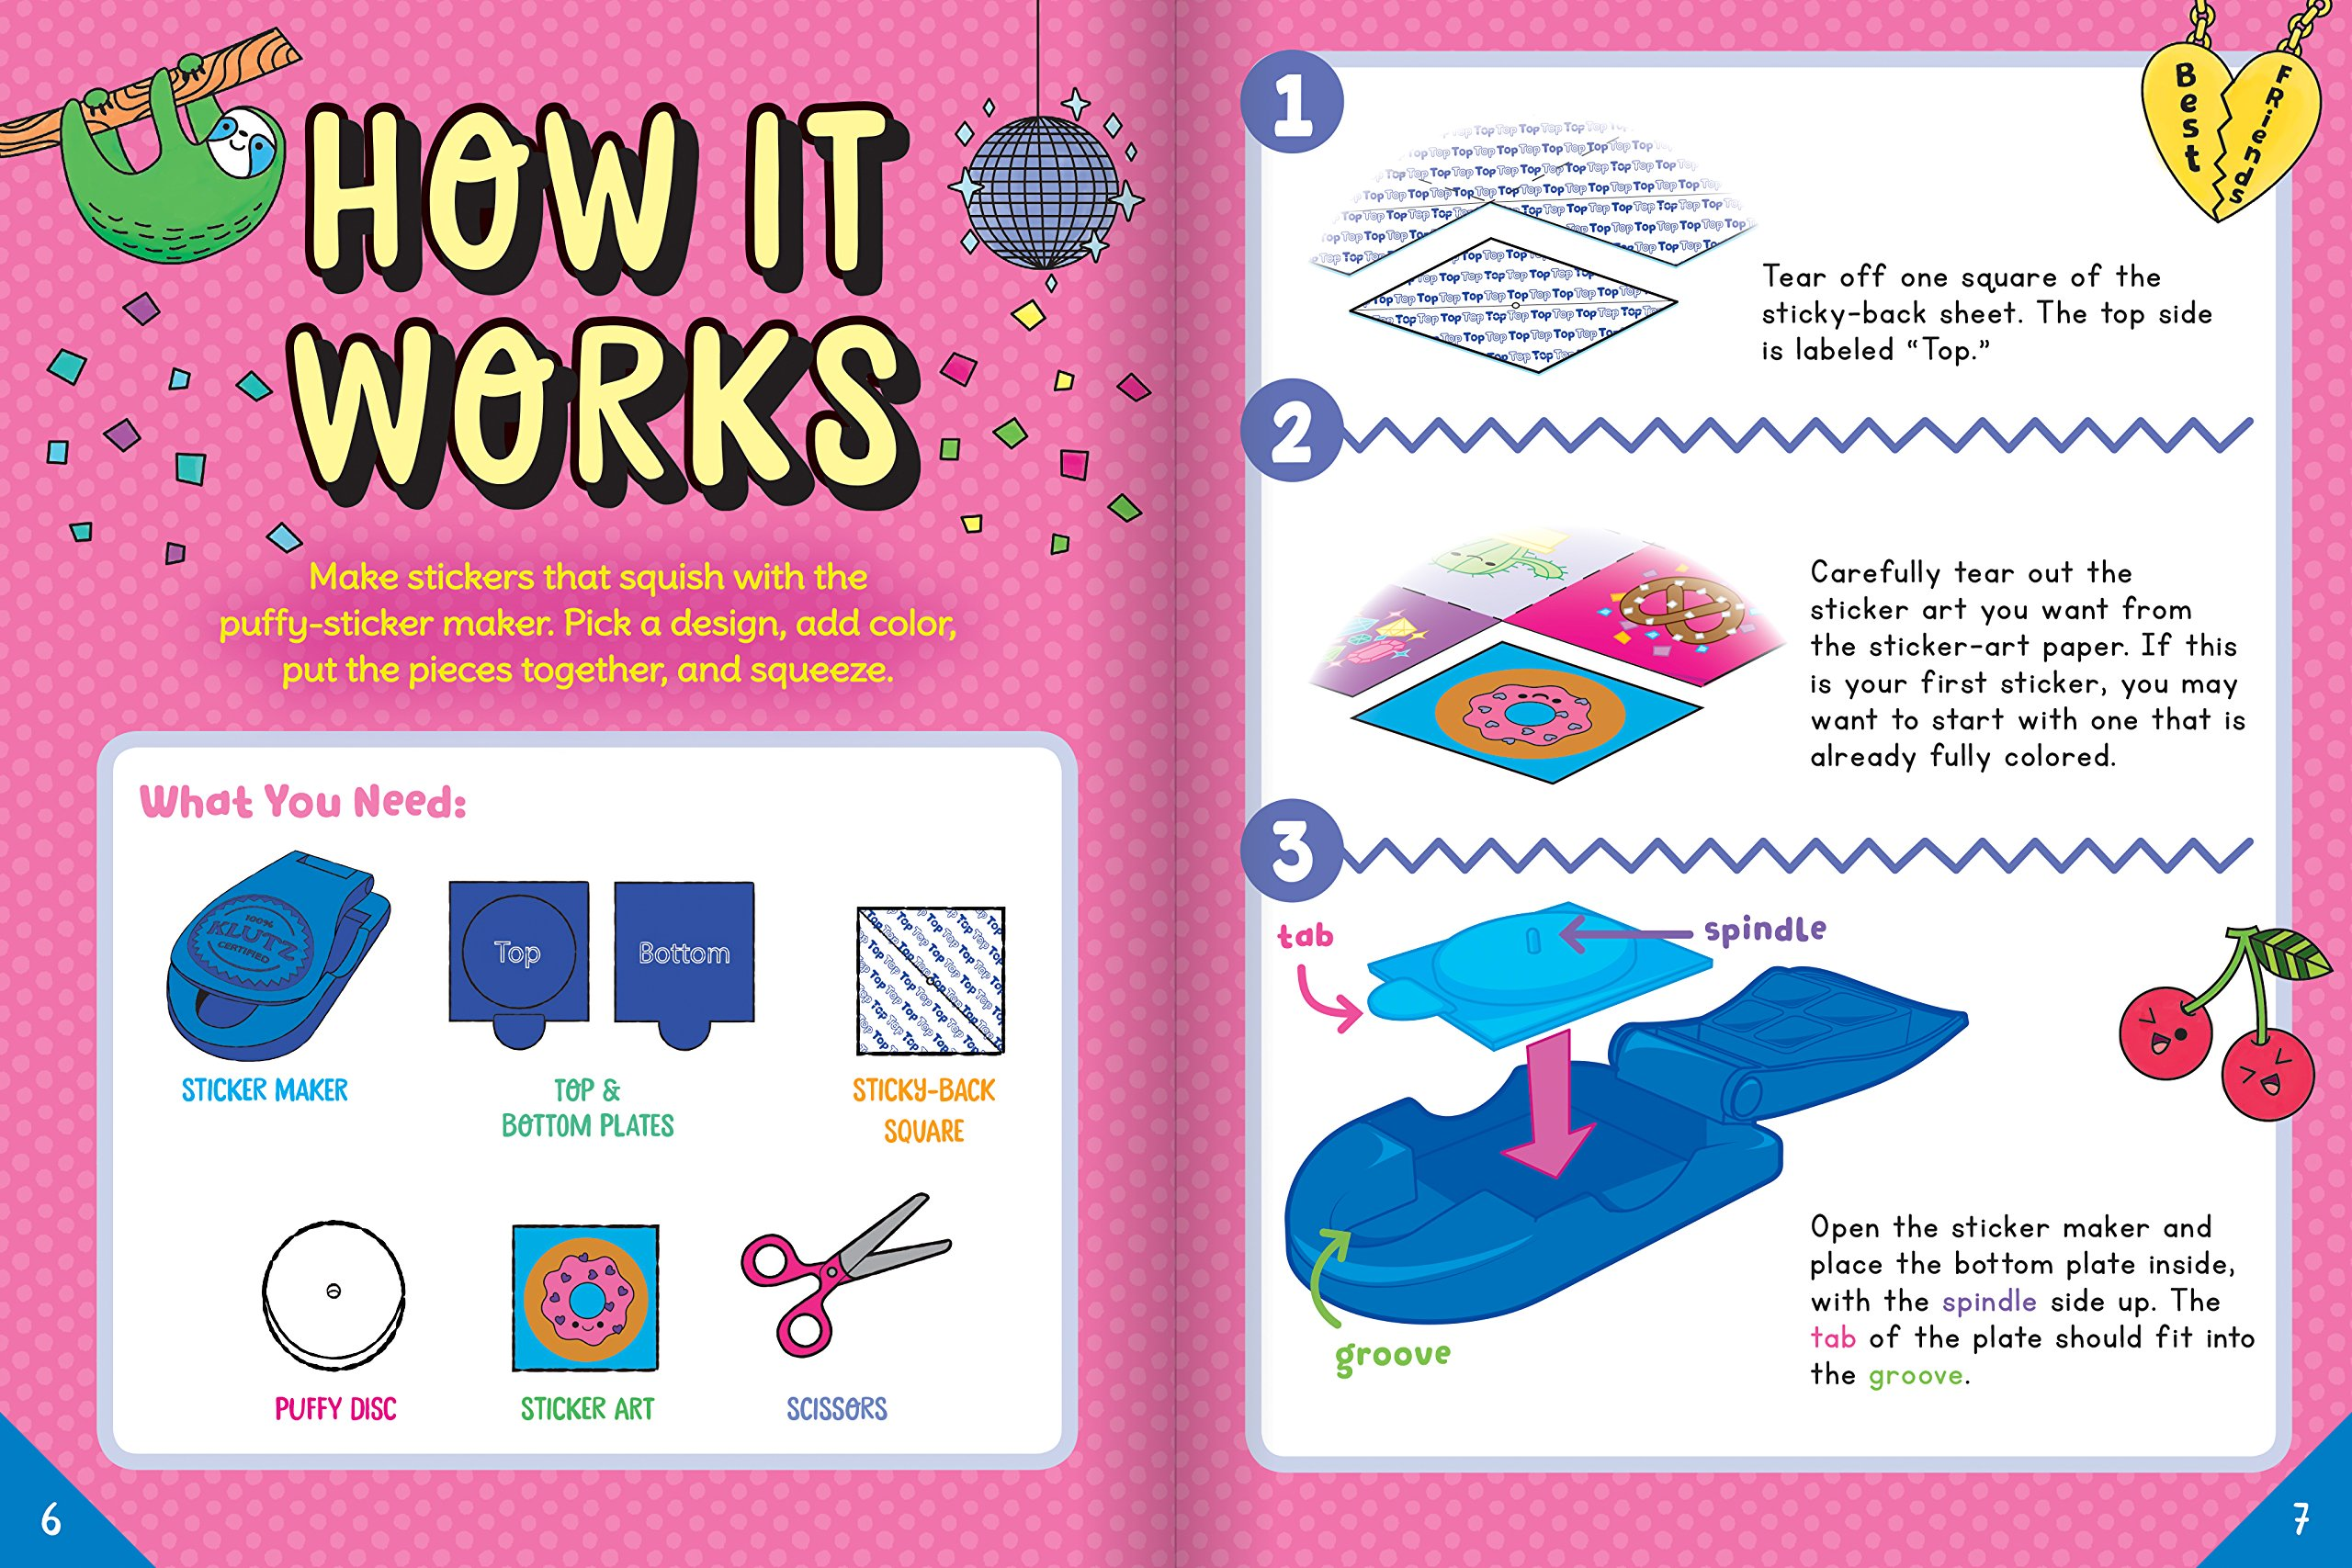 Make your own puffy stickers klutz 9781338210194 books amazon ca